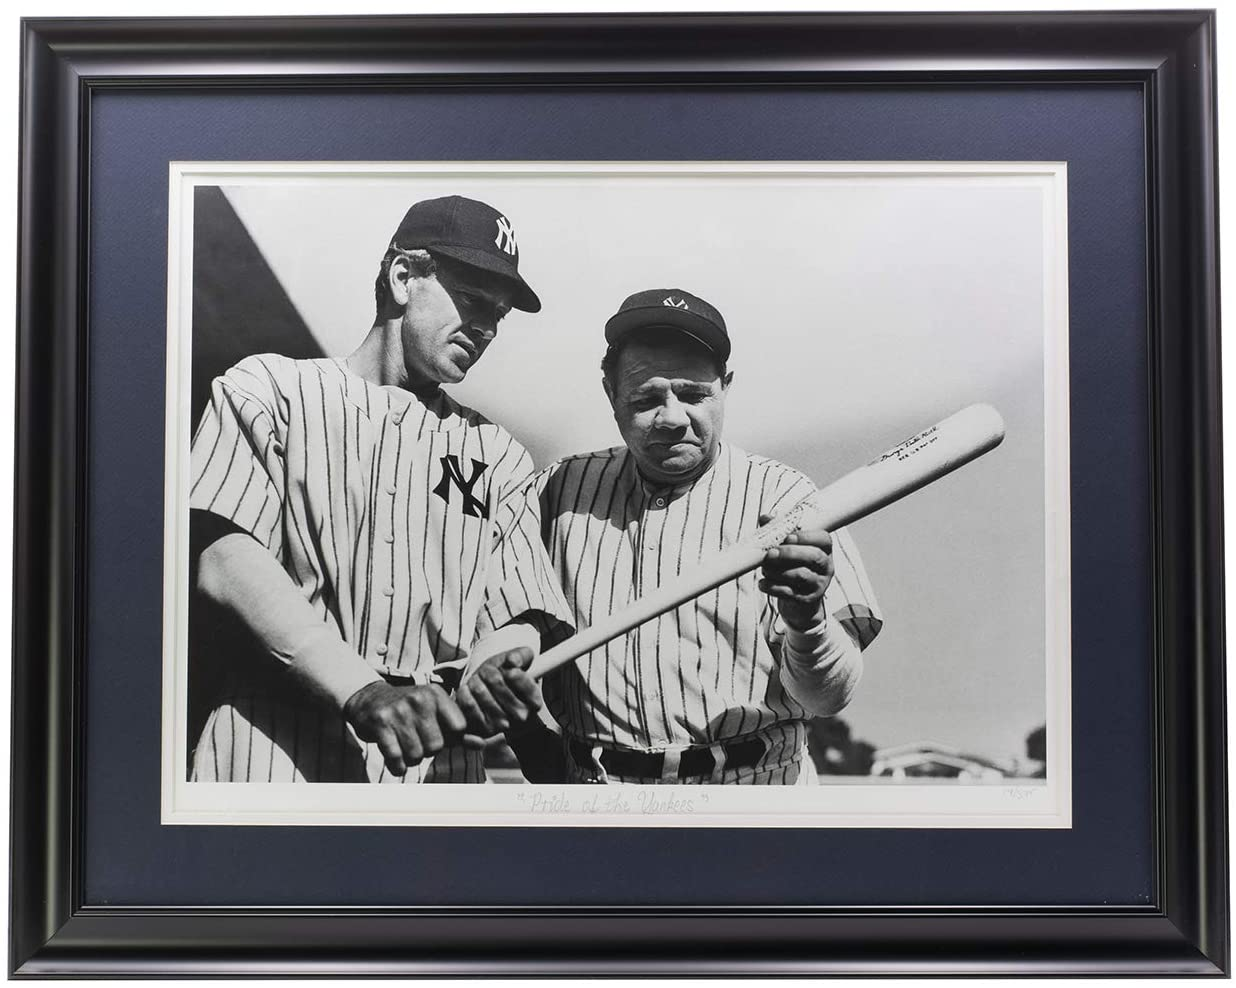 Babe Ruth Framed Pride of the Archive Photo